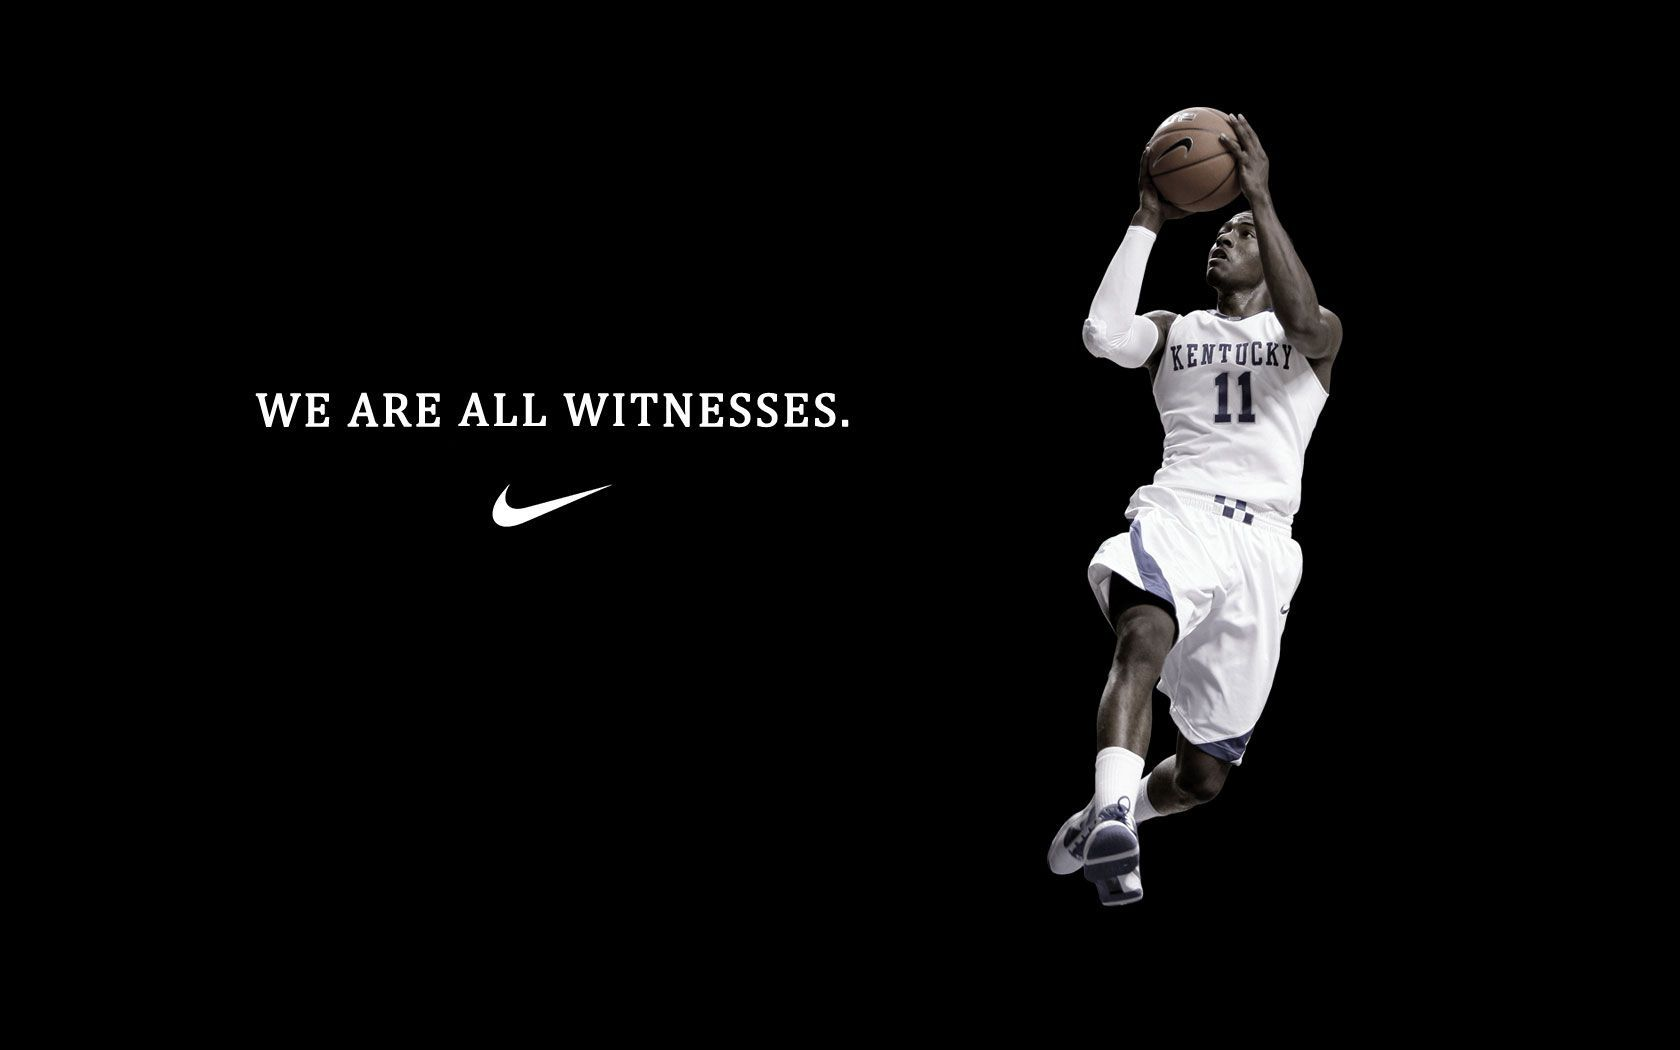 Download Nike Basketball Wallpaper Gallery